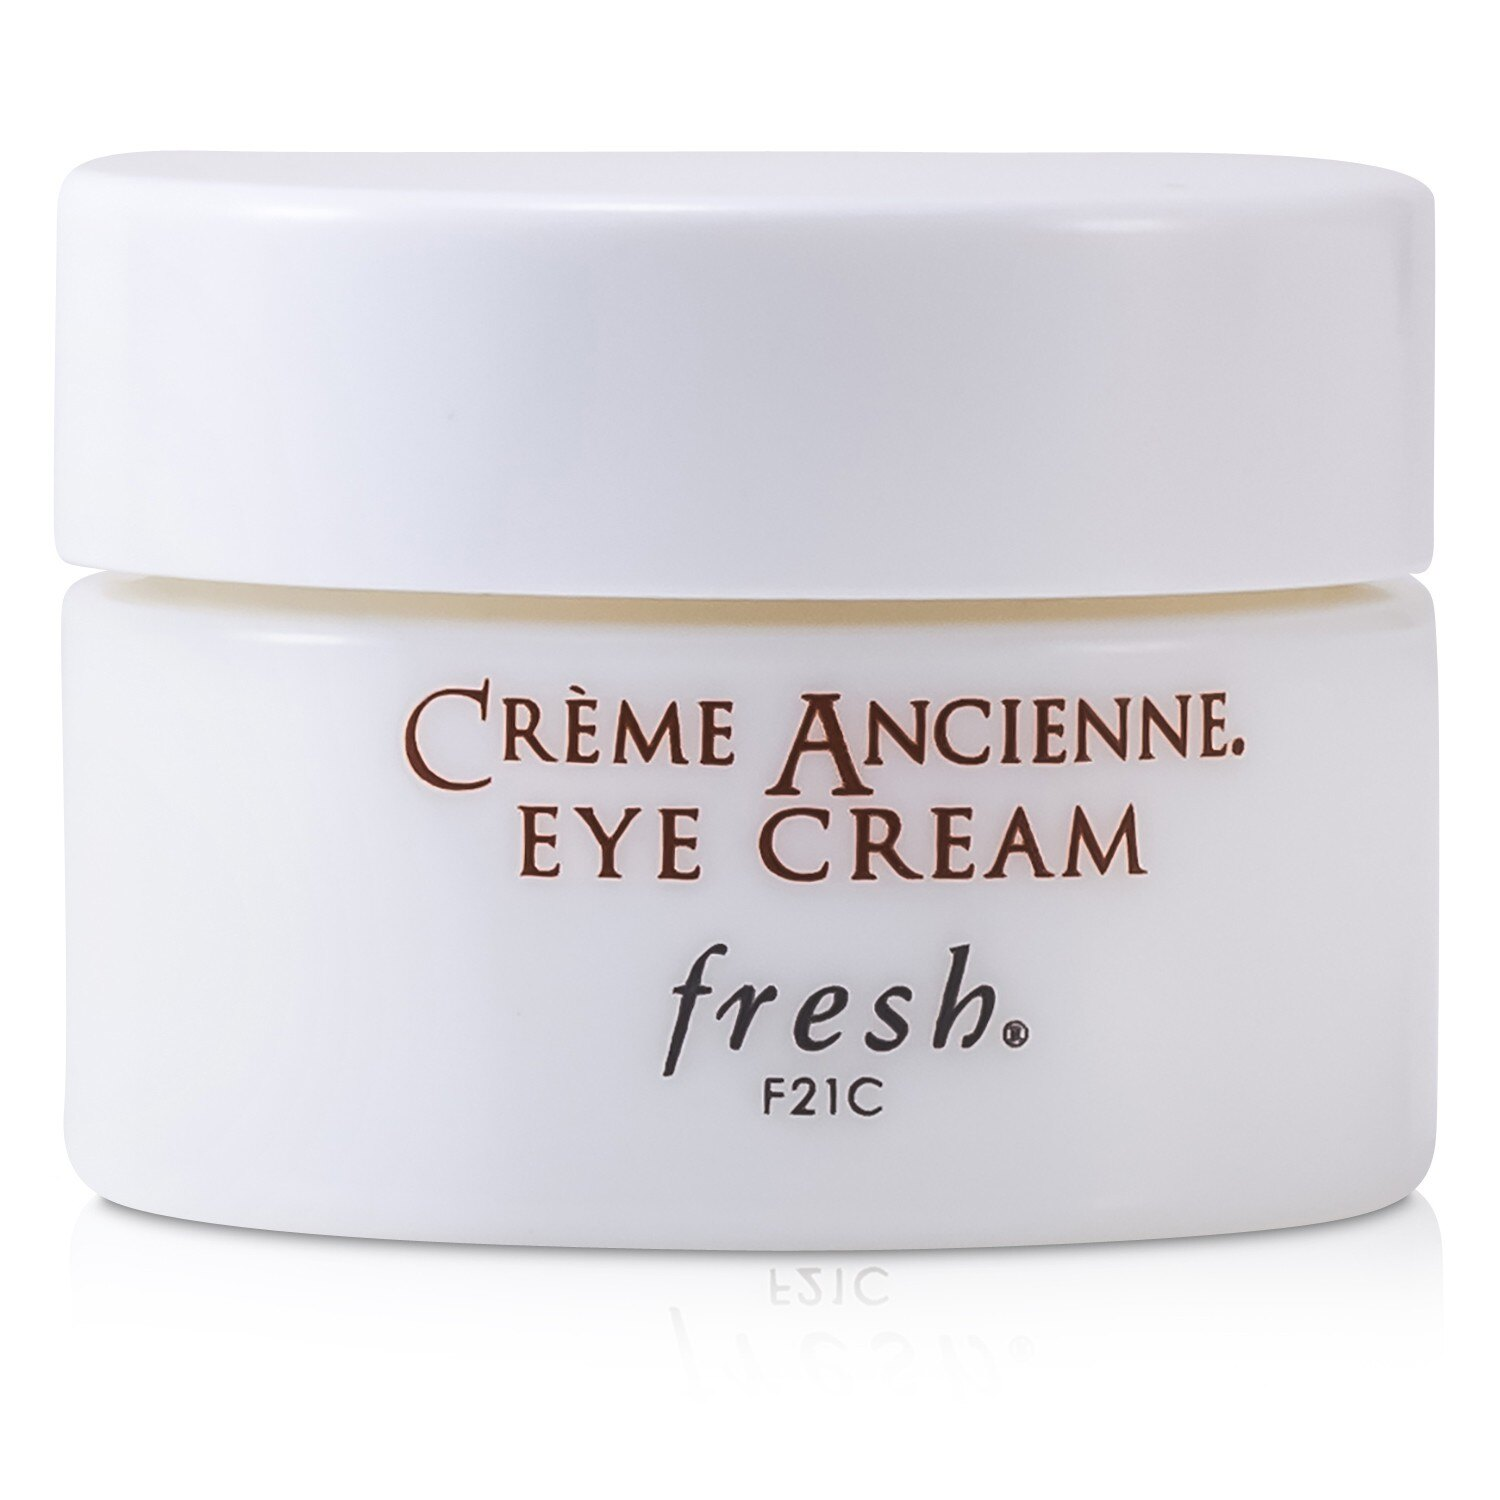 Fresh 馥蕾詩 全效古法極致眼霜 Creme Ancienne Eye Cream 15g/0.5oz